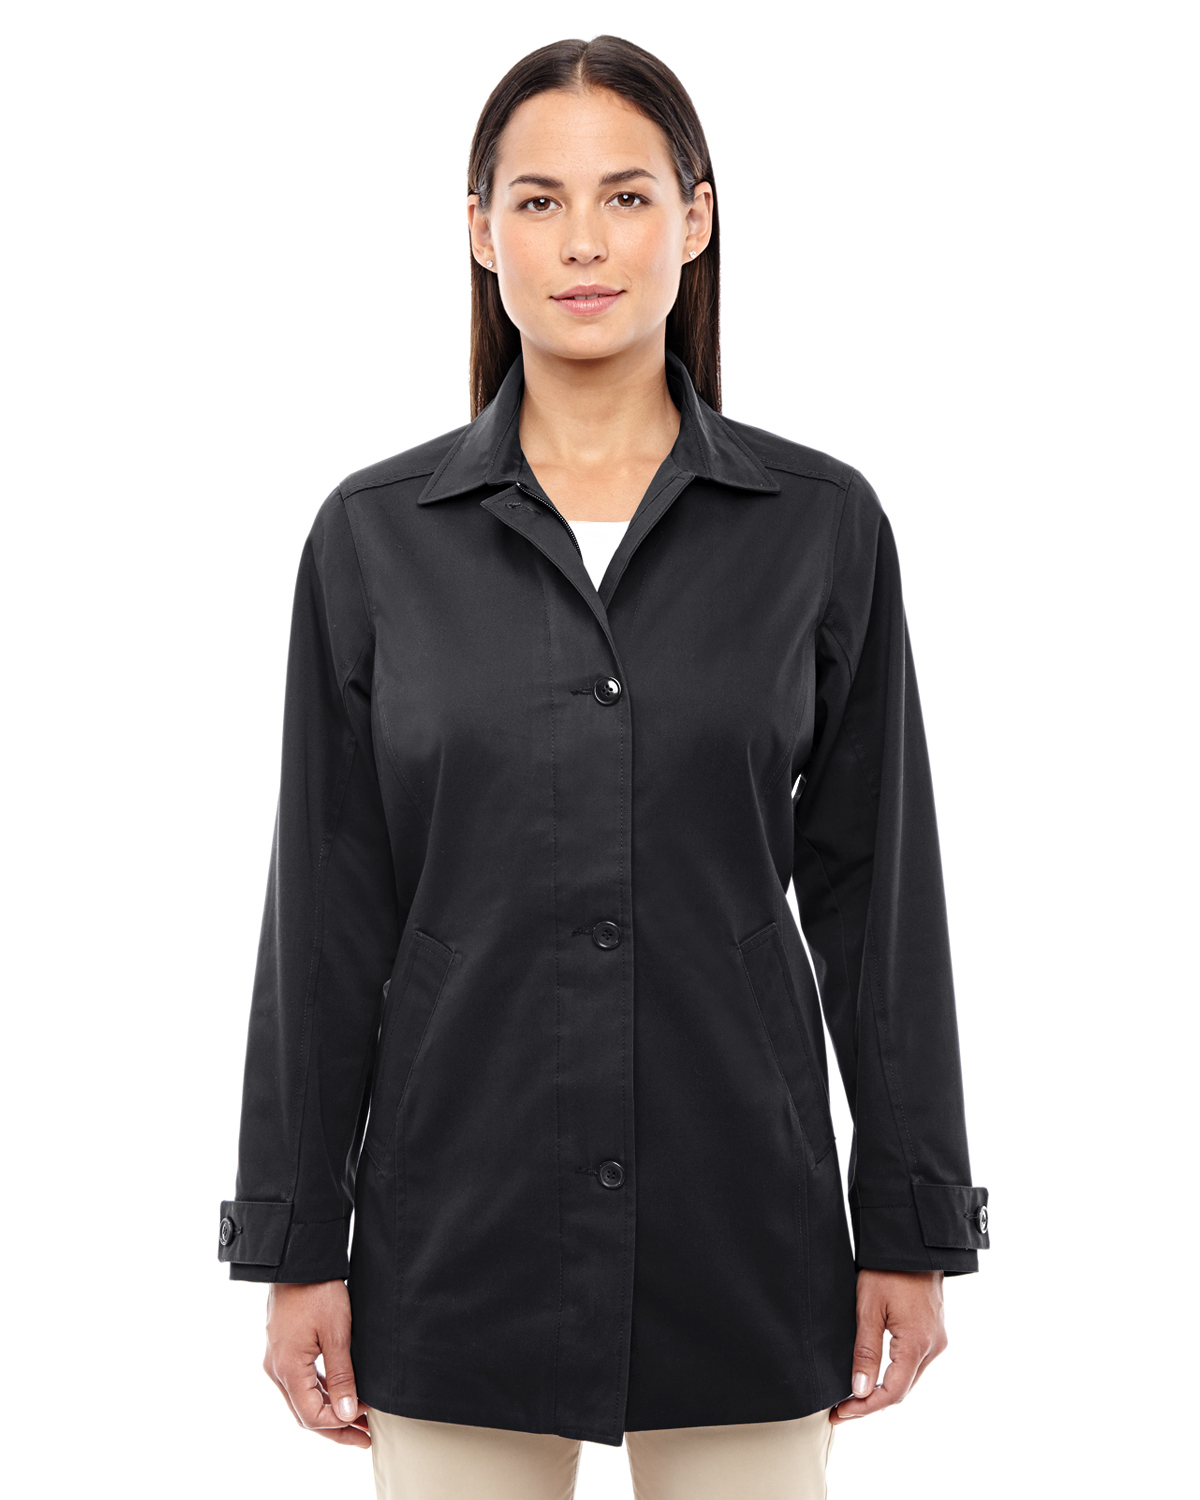 Devon & Jones D982W - Ladies' Lightweight Basic Trench Jacket